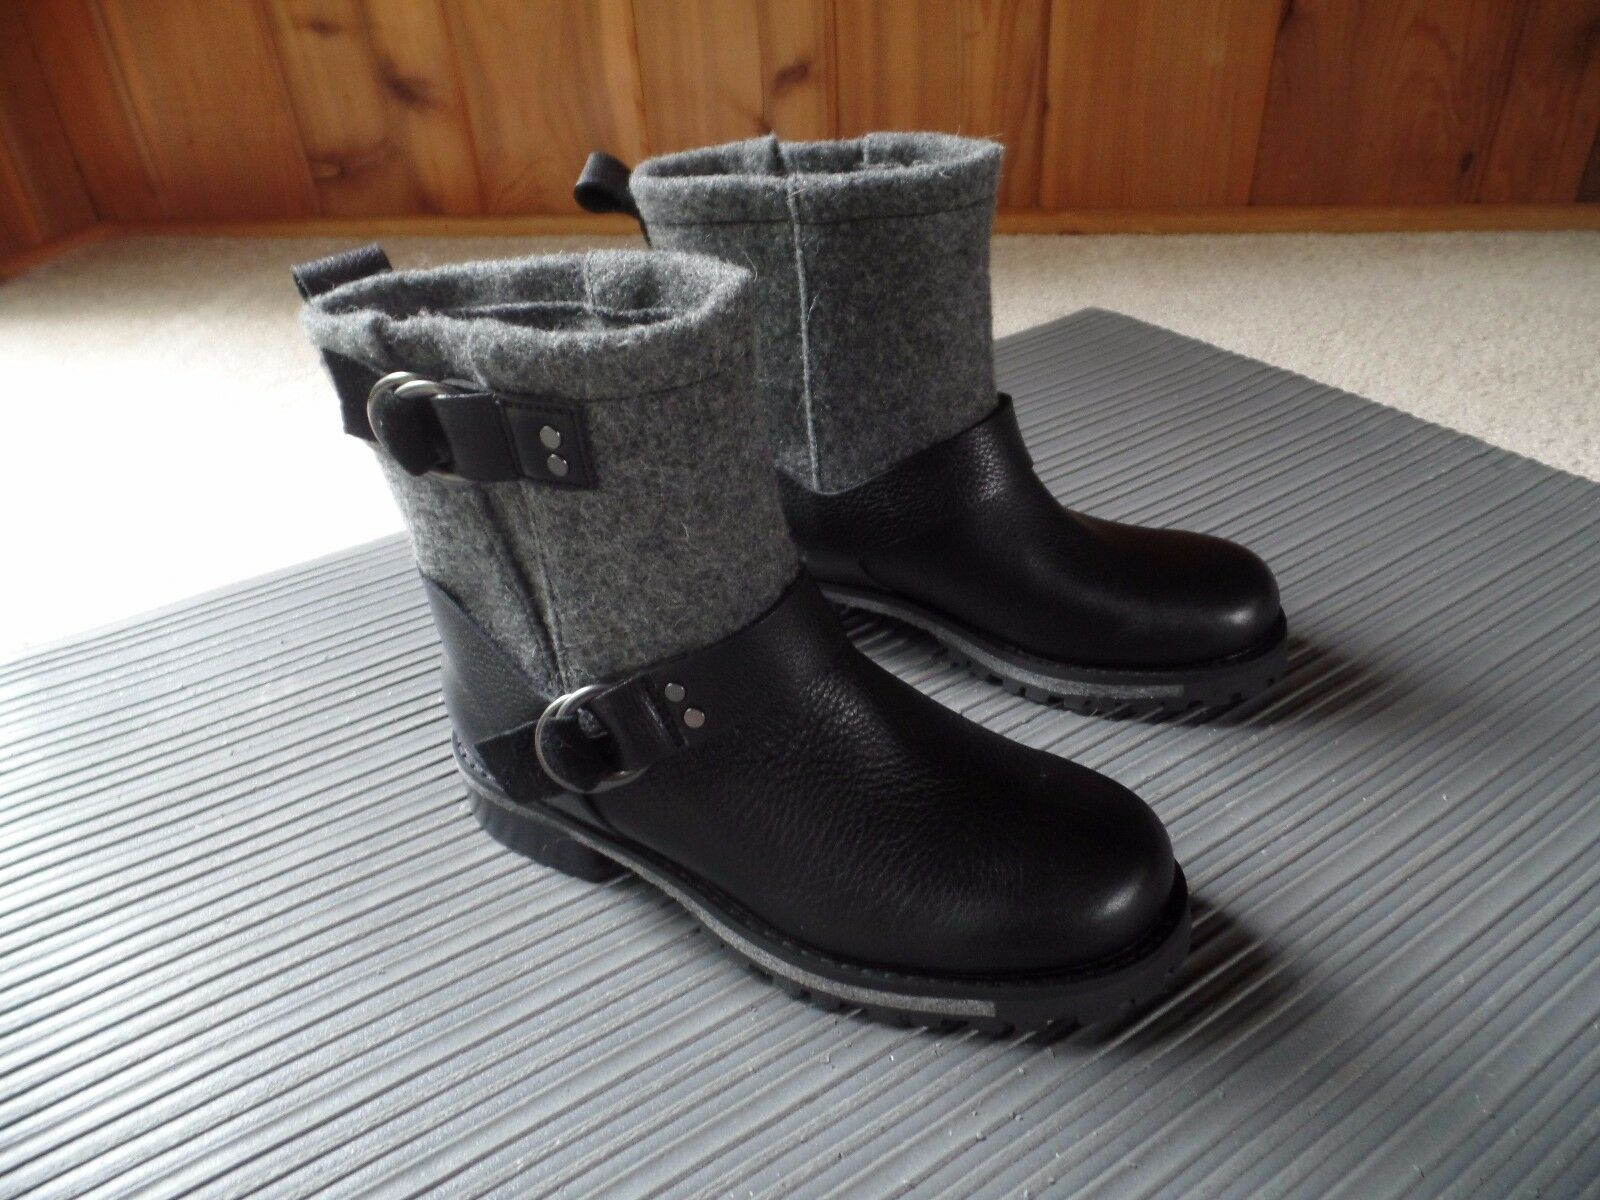 New Woolrich Boots Size Size Size 6 Black 33b60a